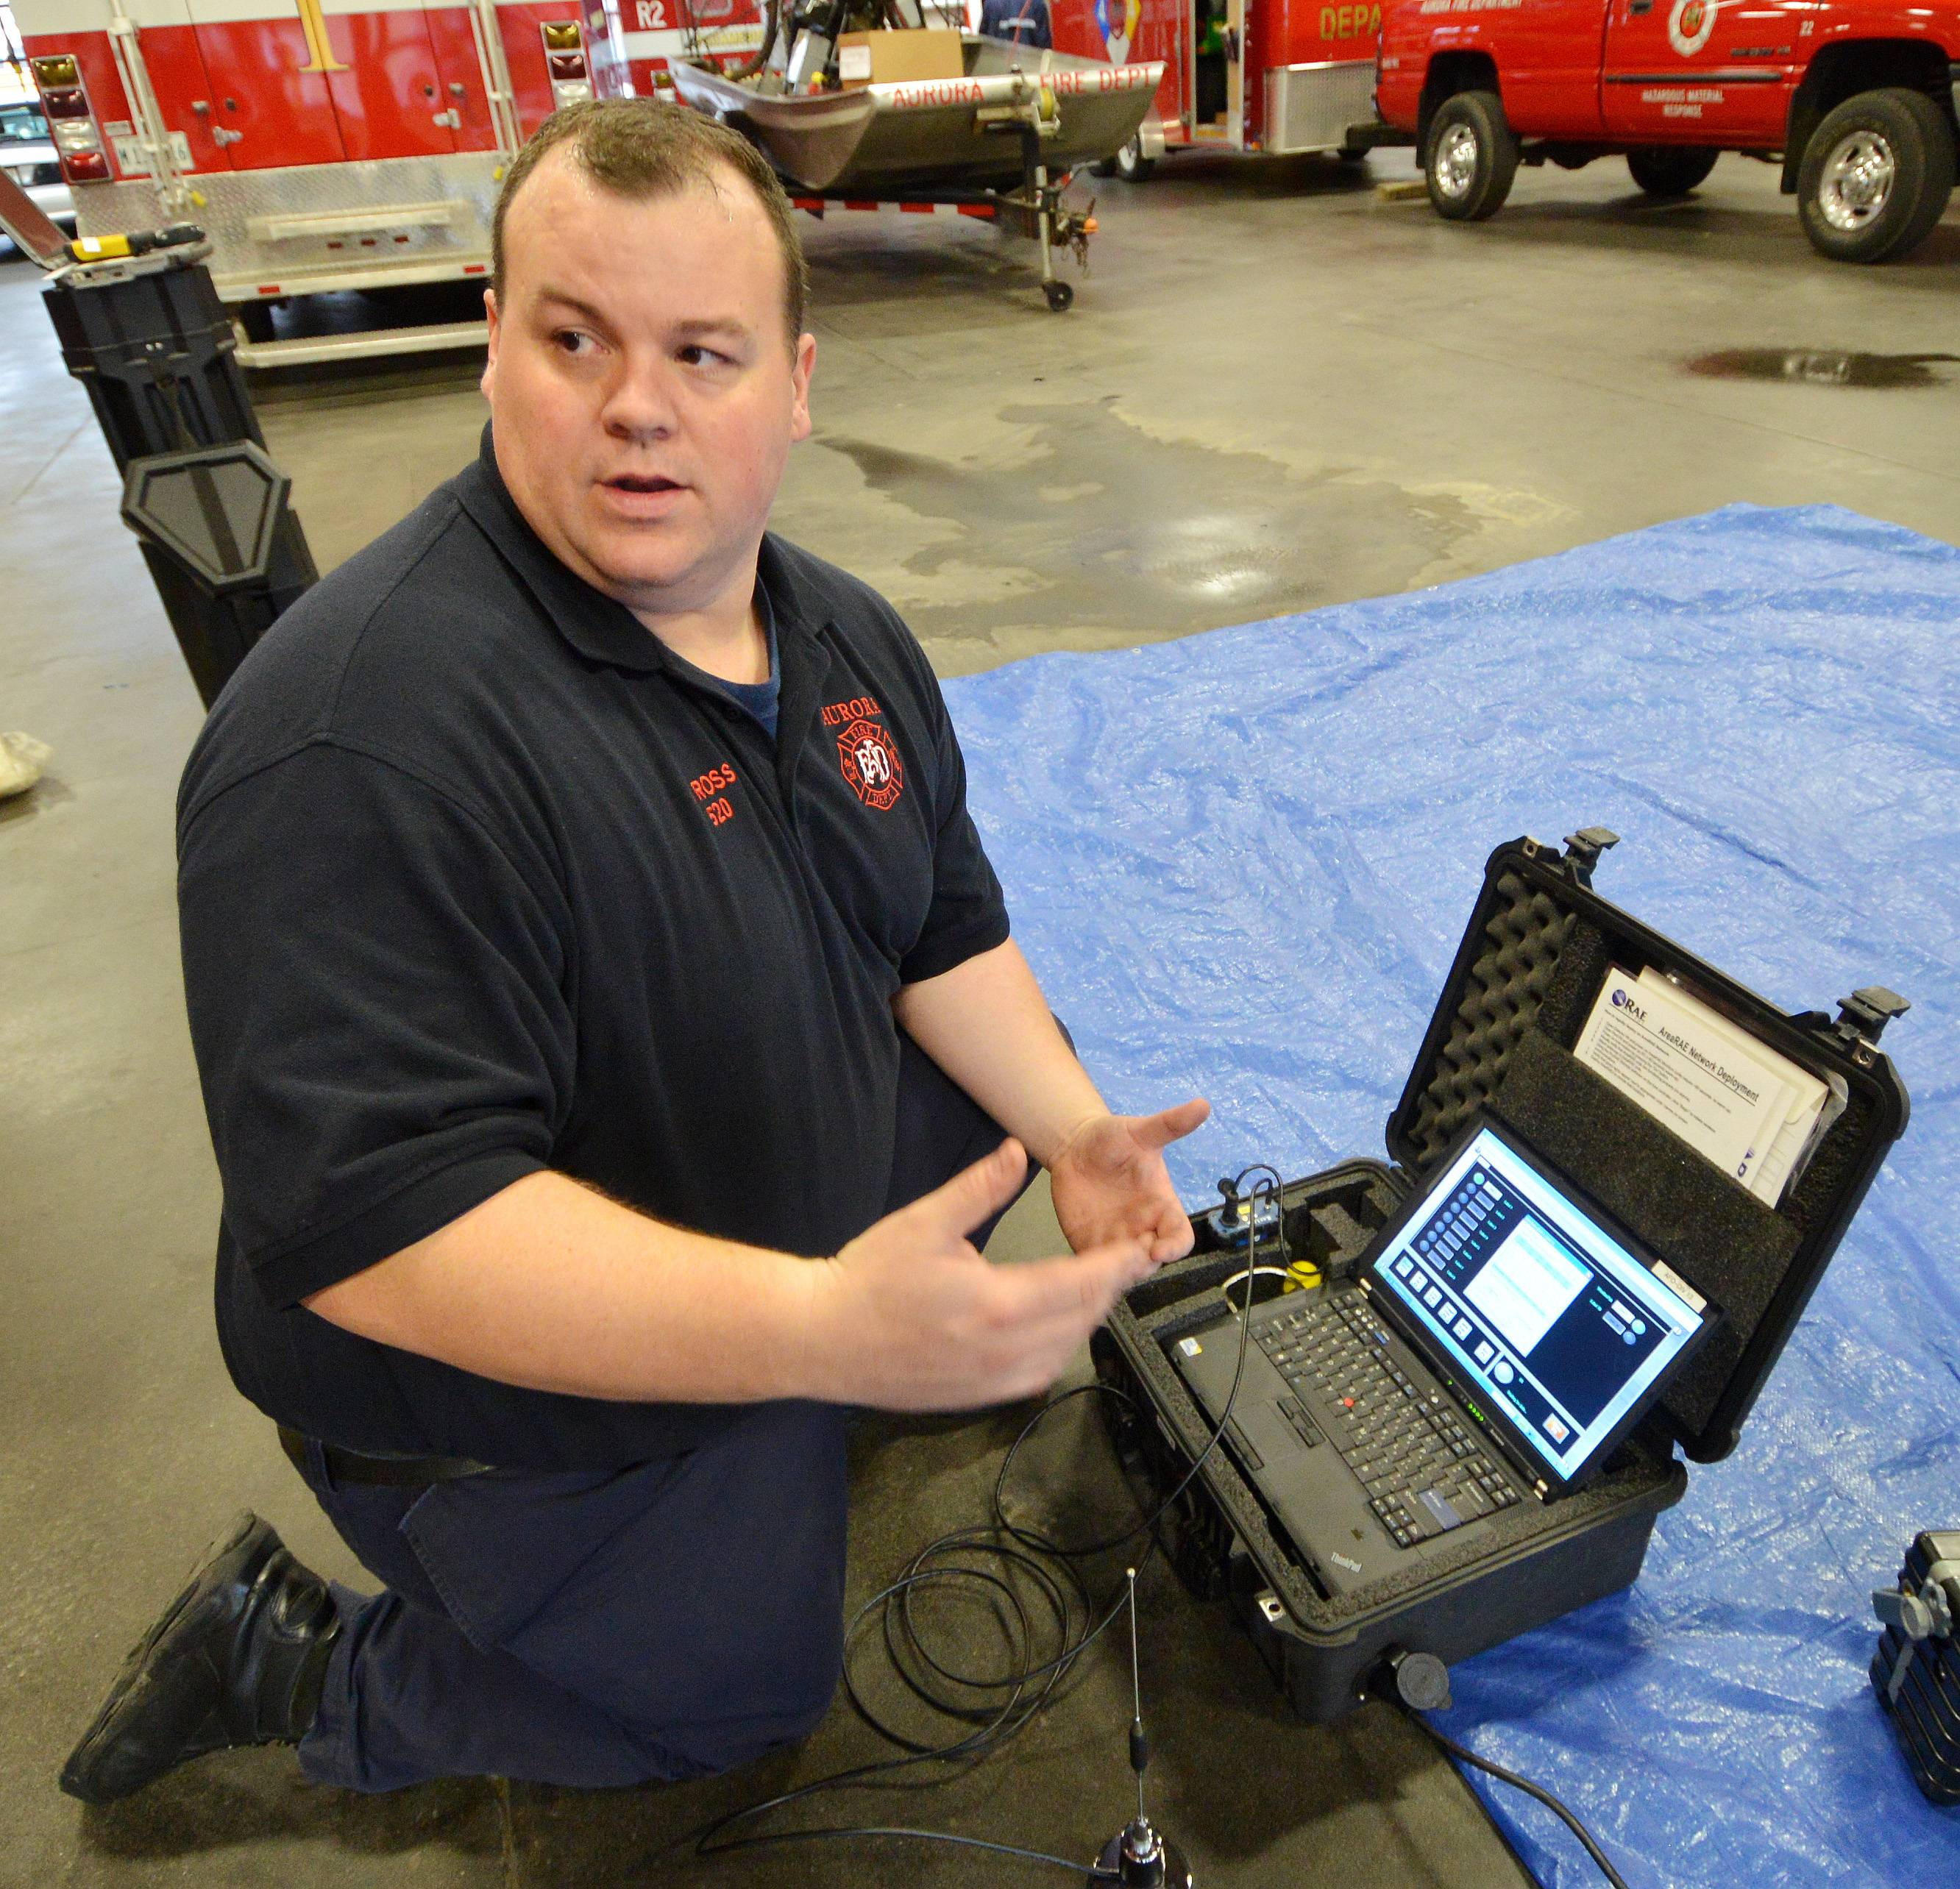 Aurora firefighter/paramedic John Ross is a hazmat specialist who is one of 21 members of the force who are trained to monitor hazardous material situations. The monitors send information back to this portable computer, which displays data including maps of how clouds of poisonous gasses are dispersing for potential evacuation situations.